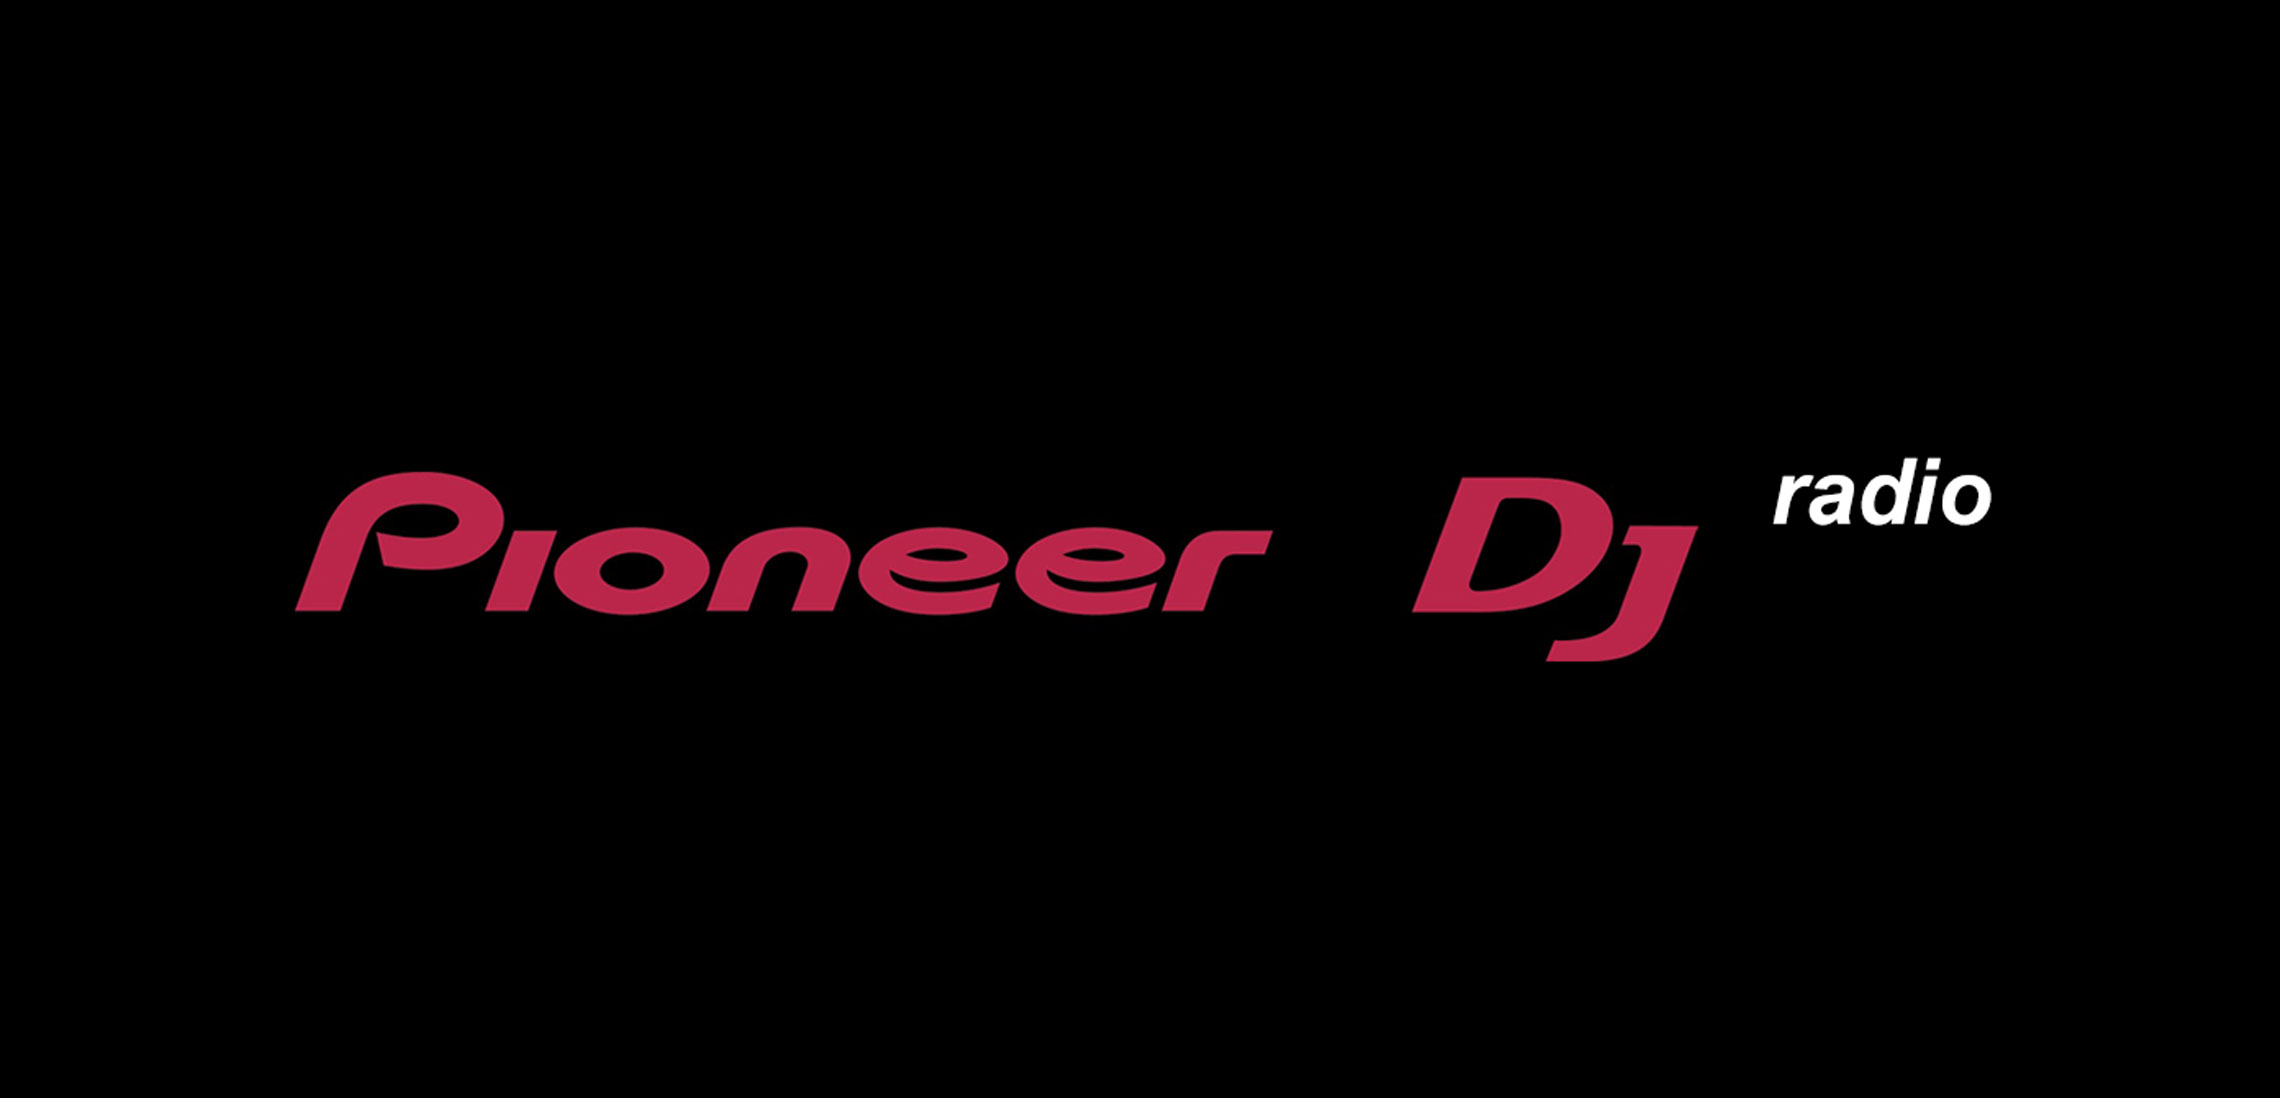 PIONEER DJ RADIO ANNOUNCES BRAND NEW NAMES AND SHOWS FOR 2016